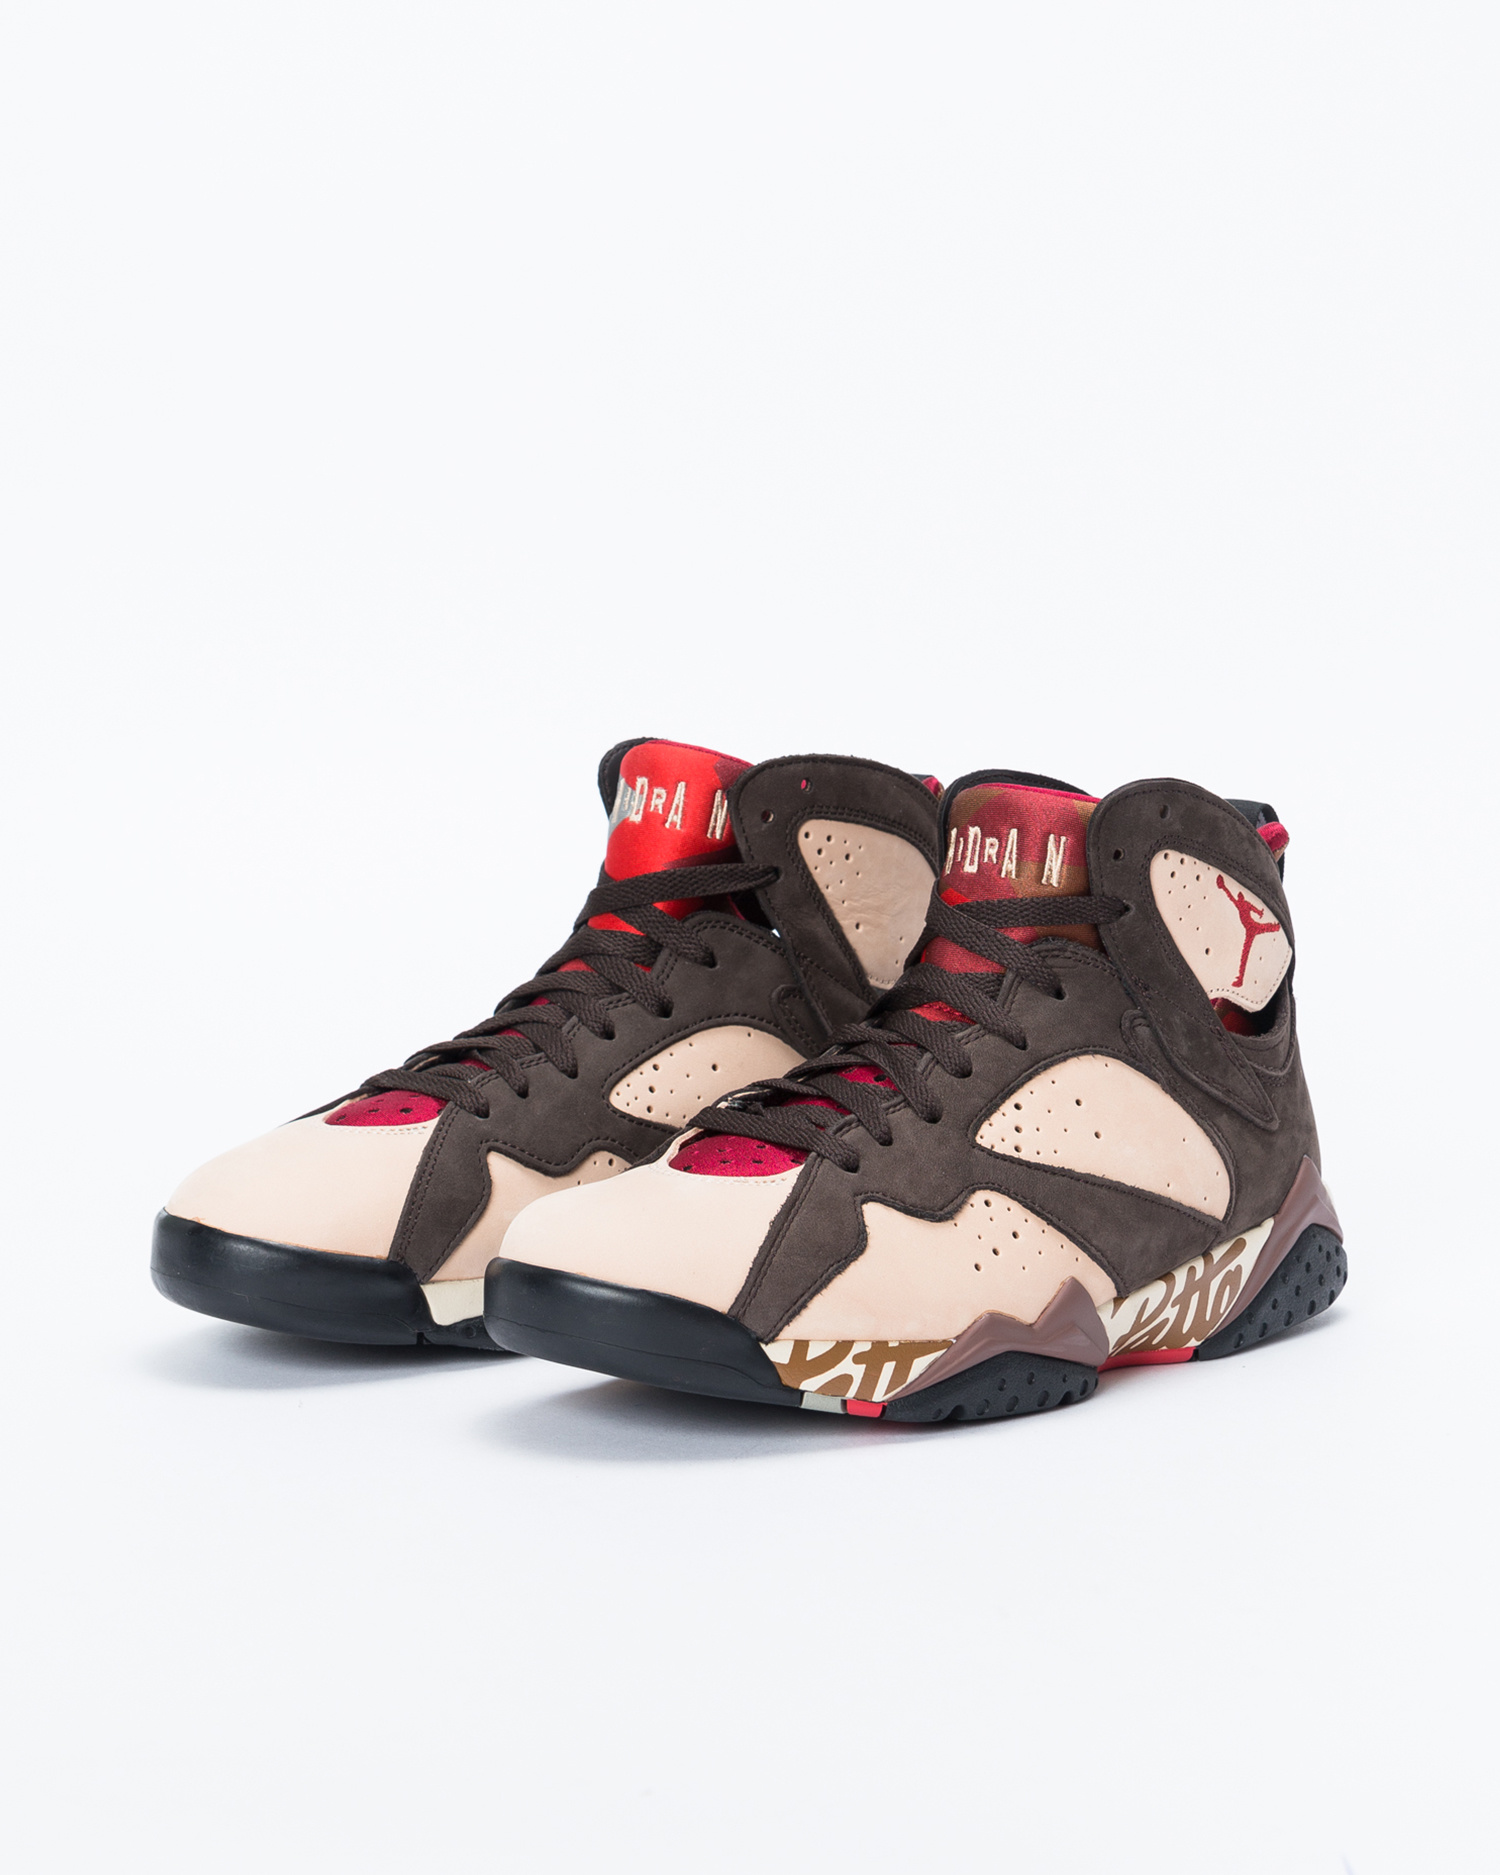 ddae7c98595 Nike Nike Air Jordan X Patta 7 Retro Shimmer/Tough Red-Velvet Brown ...